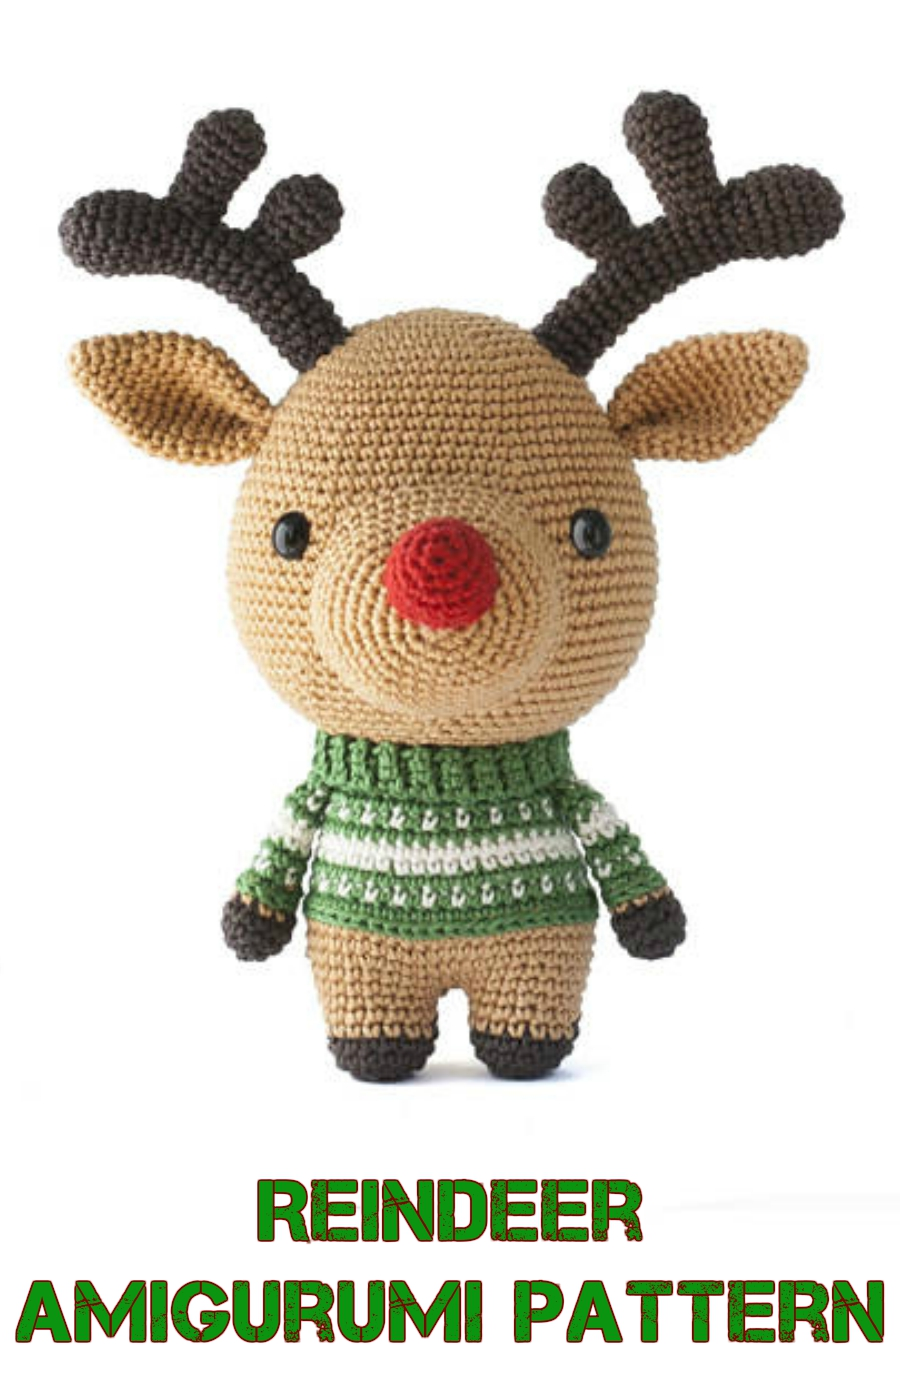 Amigurumi Reindeers Free Crochet Patterns | Crochet xmas, Holiday ... | 1400x900